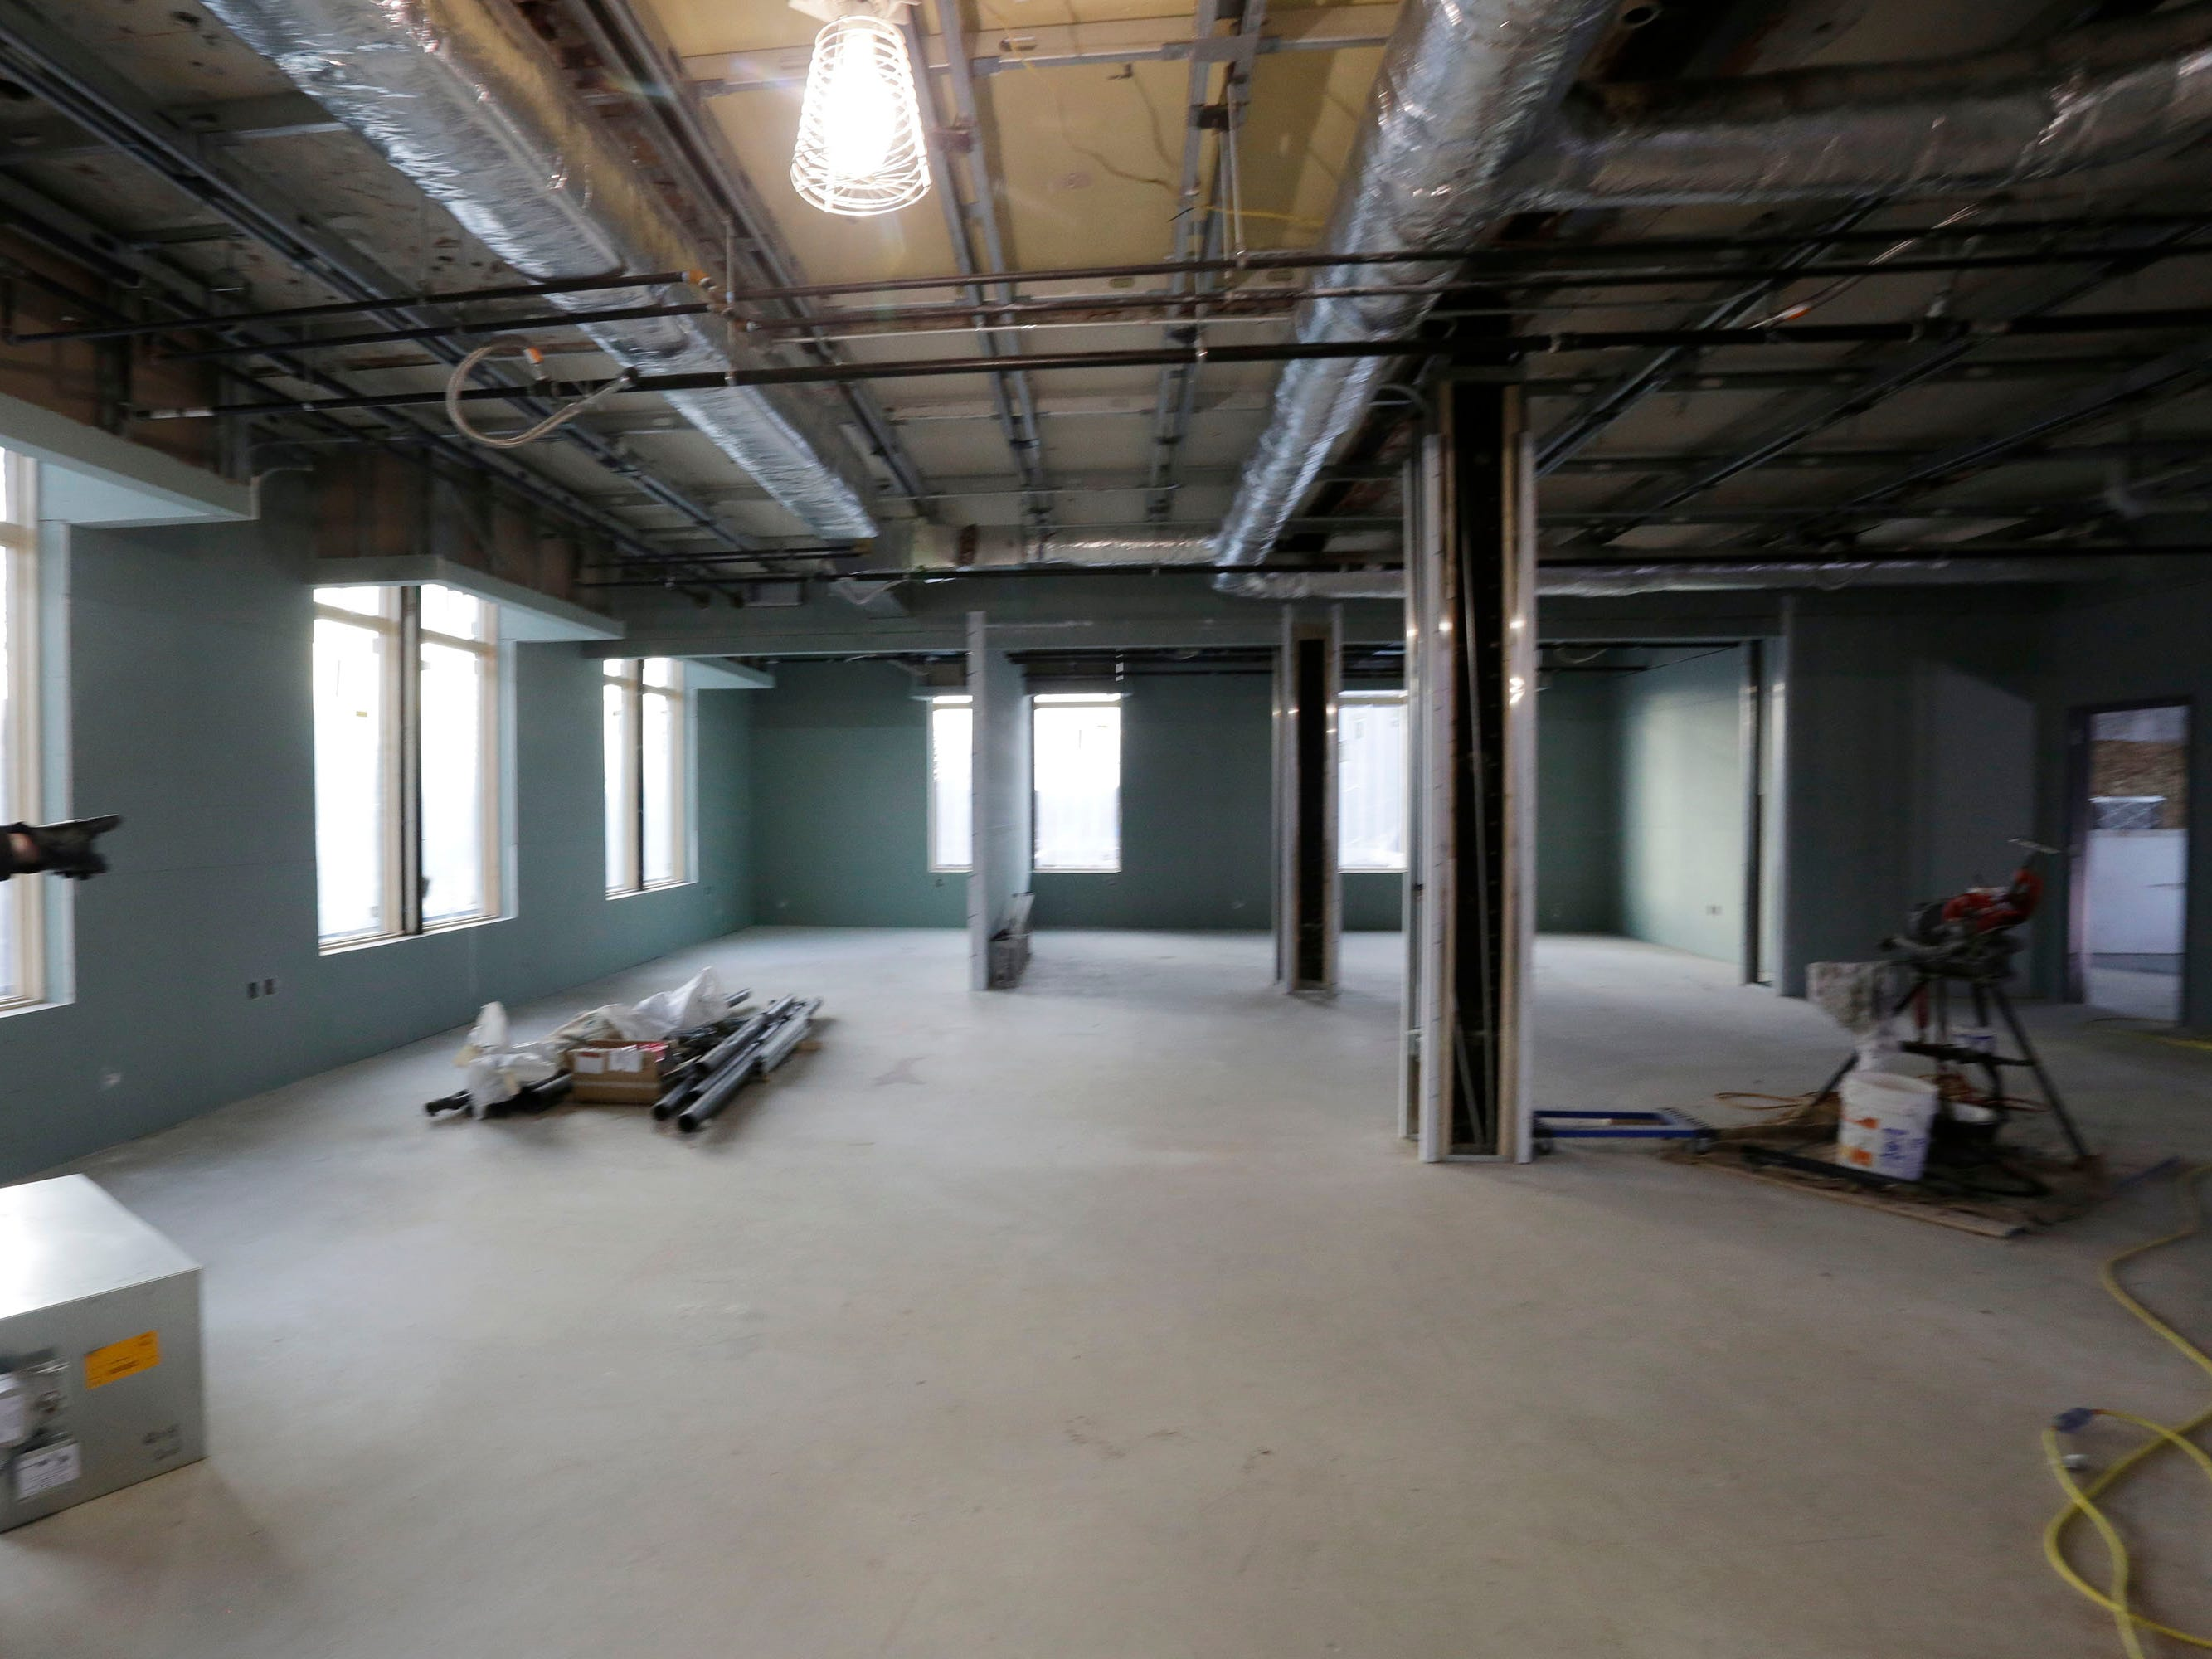 Inside Sheboygan City Hall during a tour of the yet to be completed renovations, Wednesday, December 5, 2018, in Sheboygan, Wis. Officials said the project should be completed sometime next year.